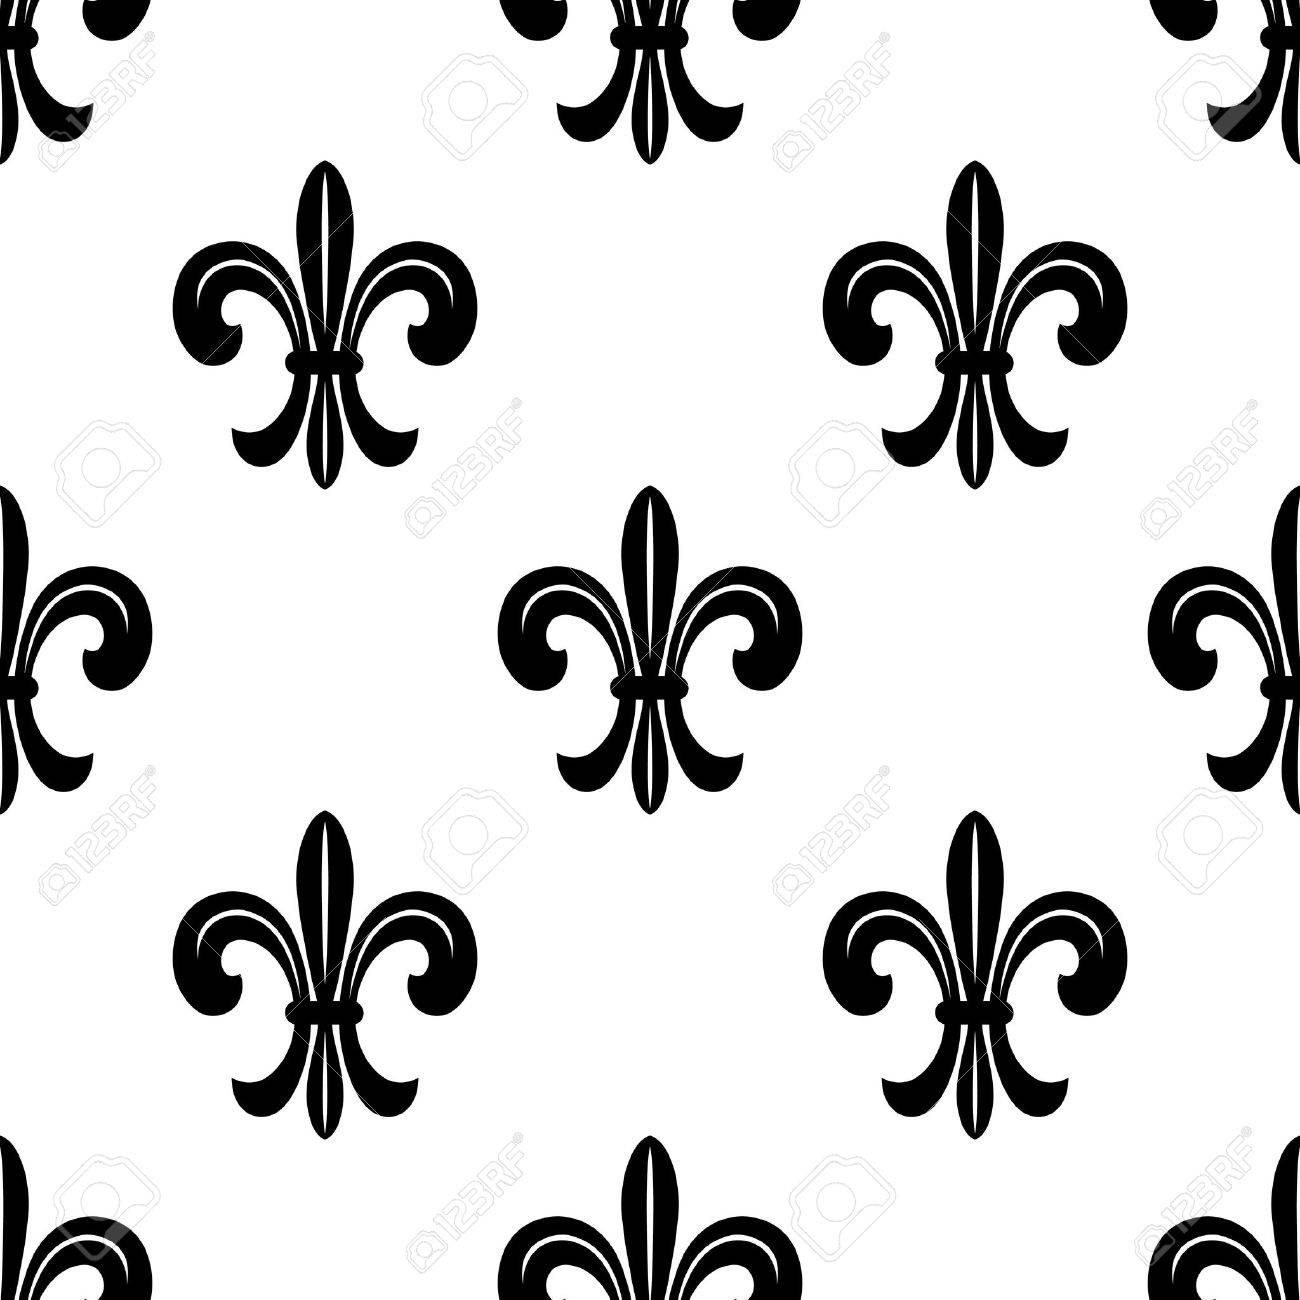 Stylized French Fleur De Lys Seamless Pattern In Black And White Suiable For Fabric Print